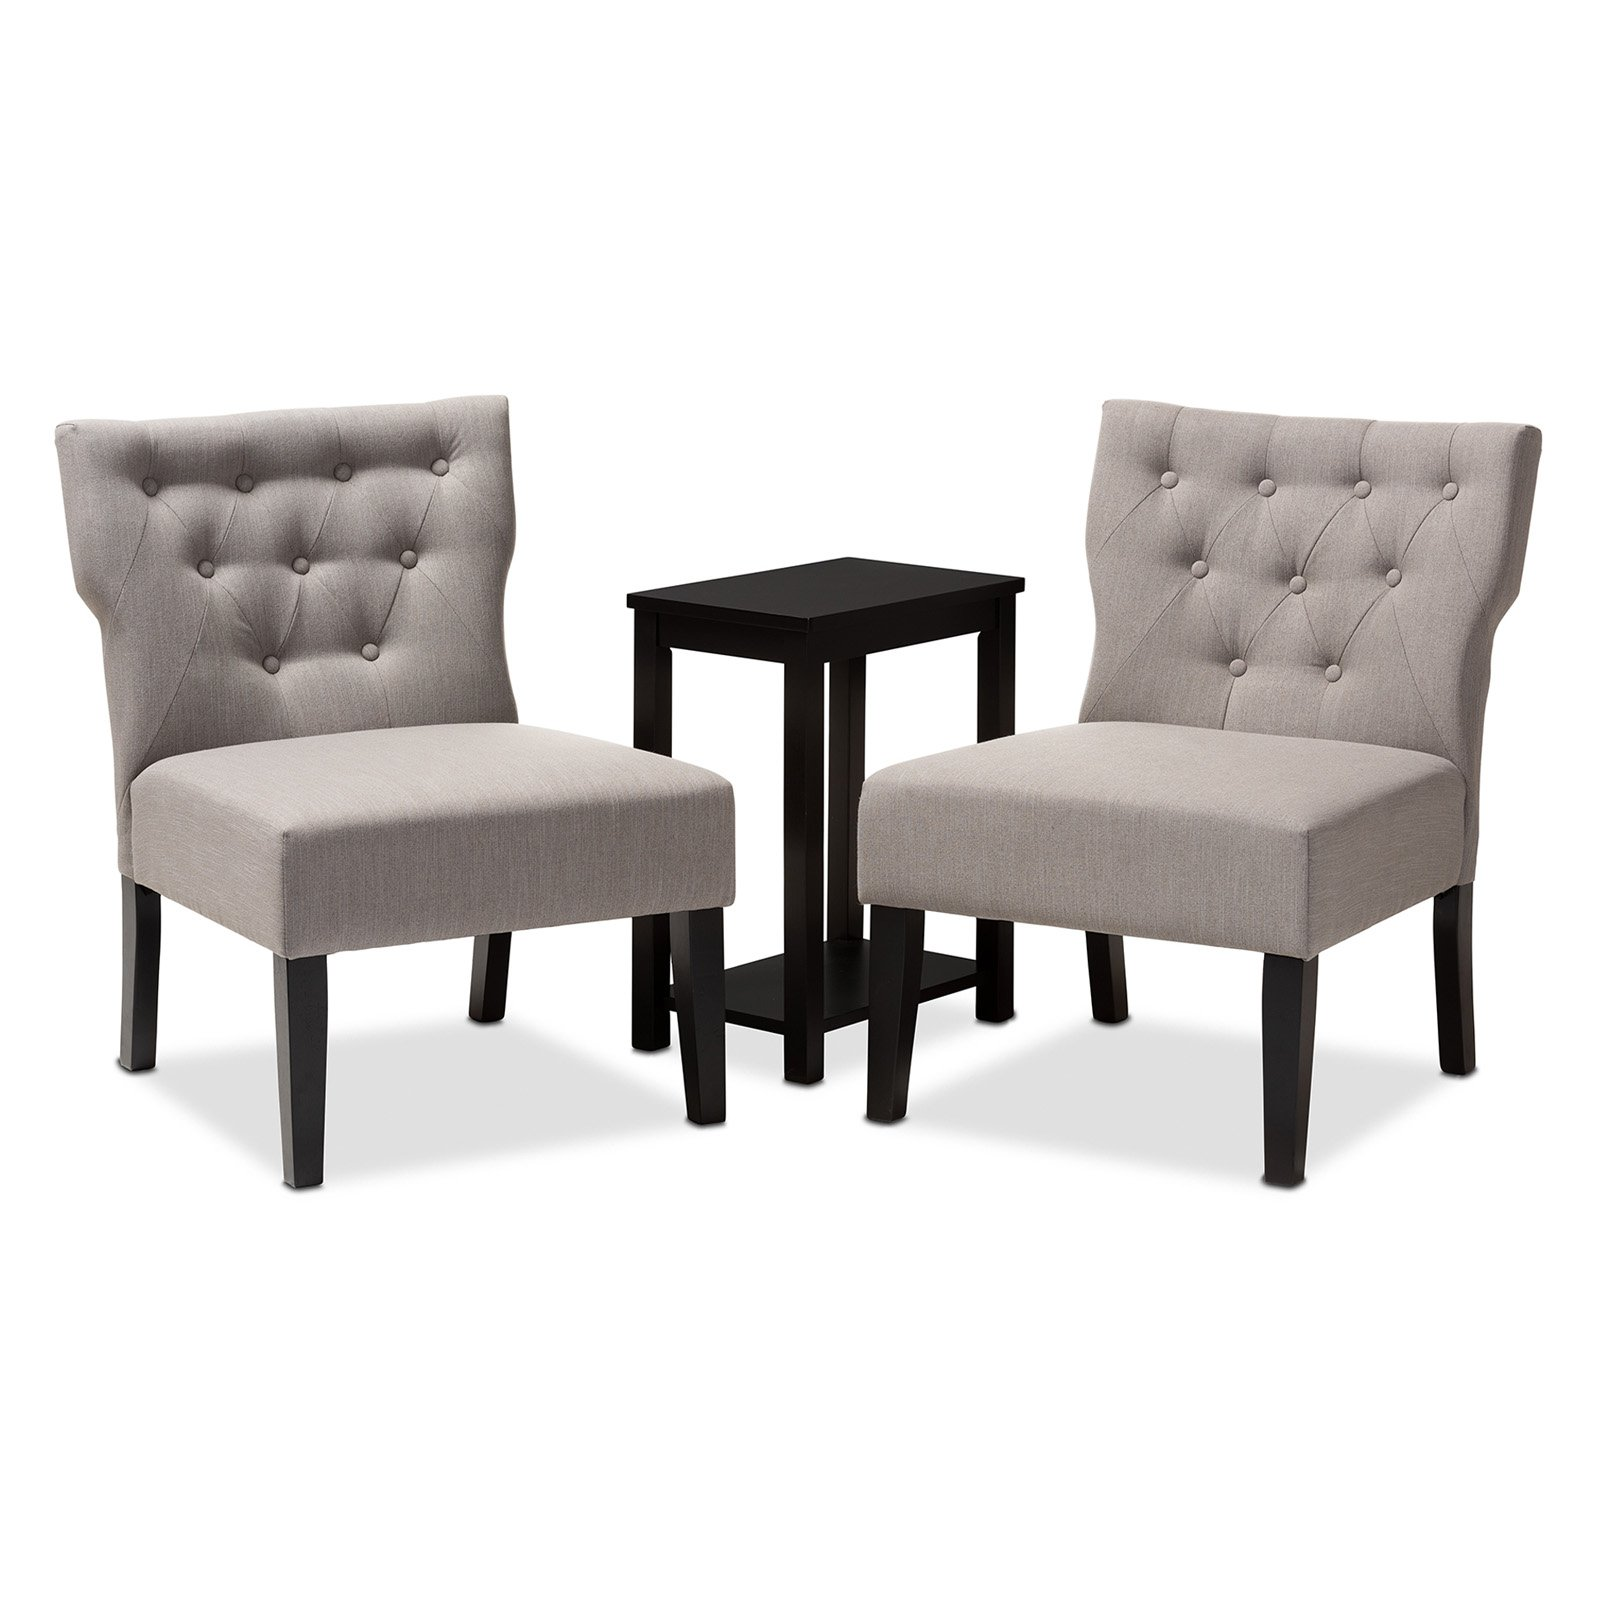 Baxton Studio Lerato 3 Piece Upholstered Tufted Accent Chair And